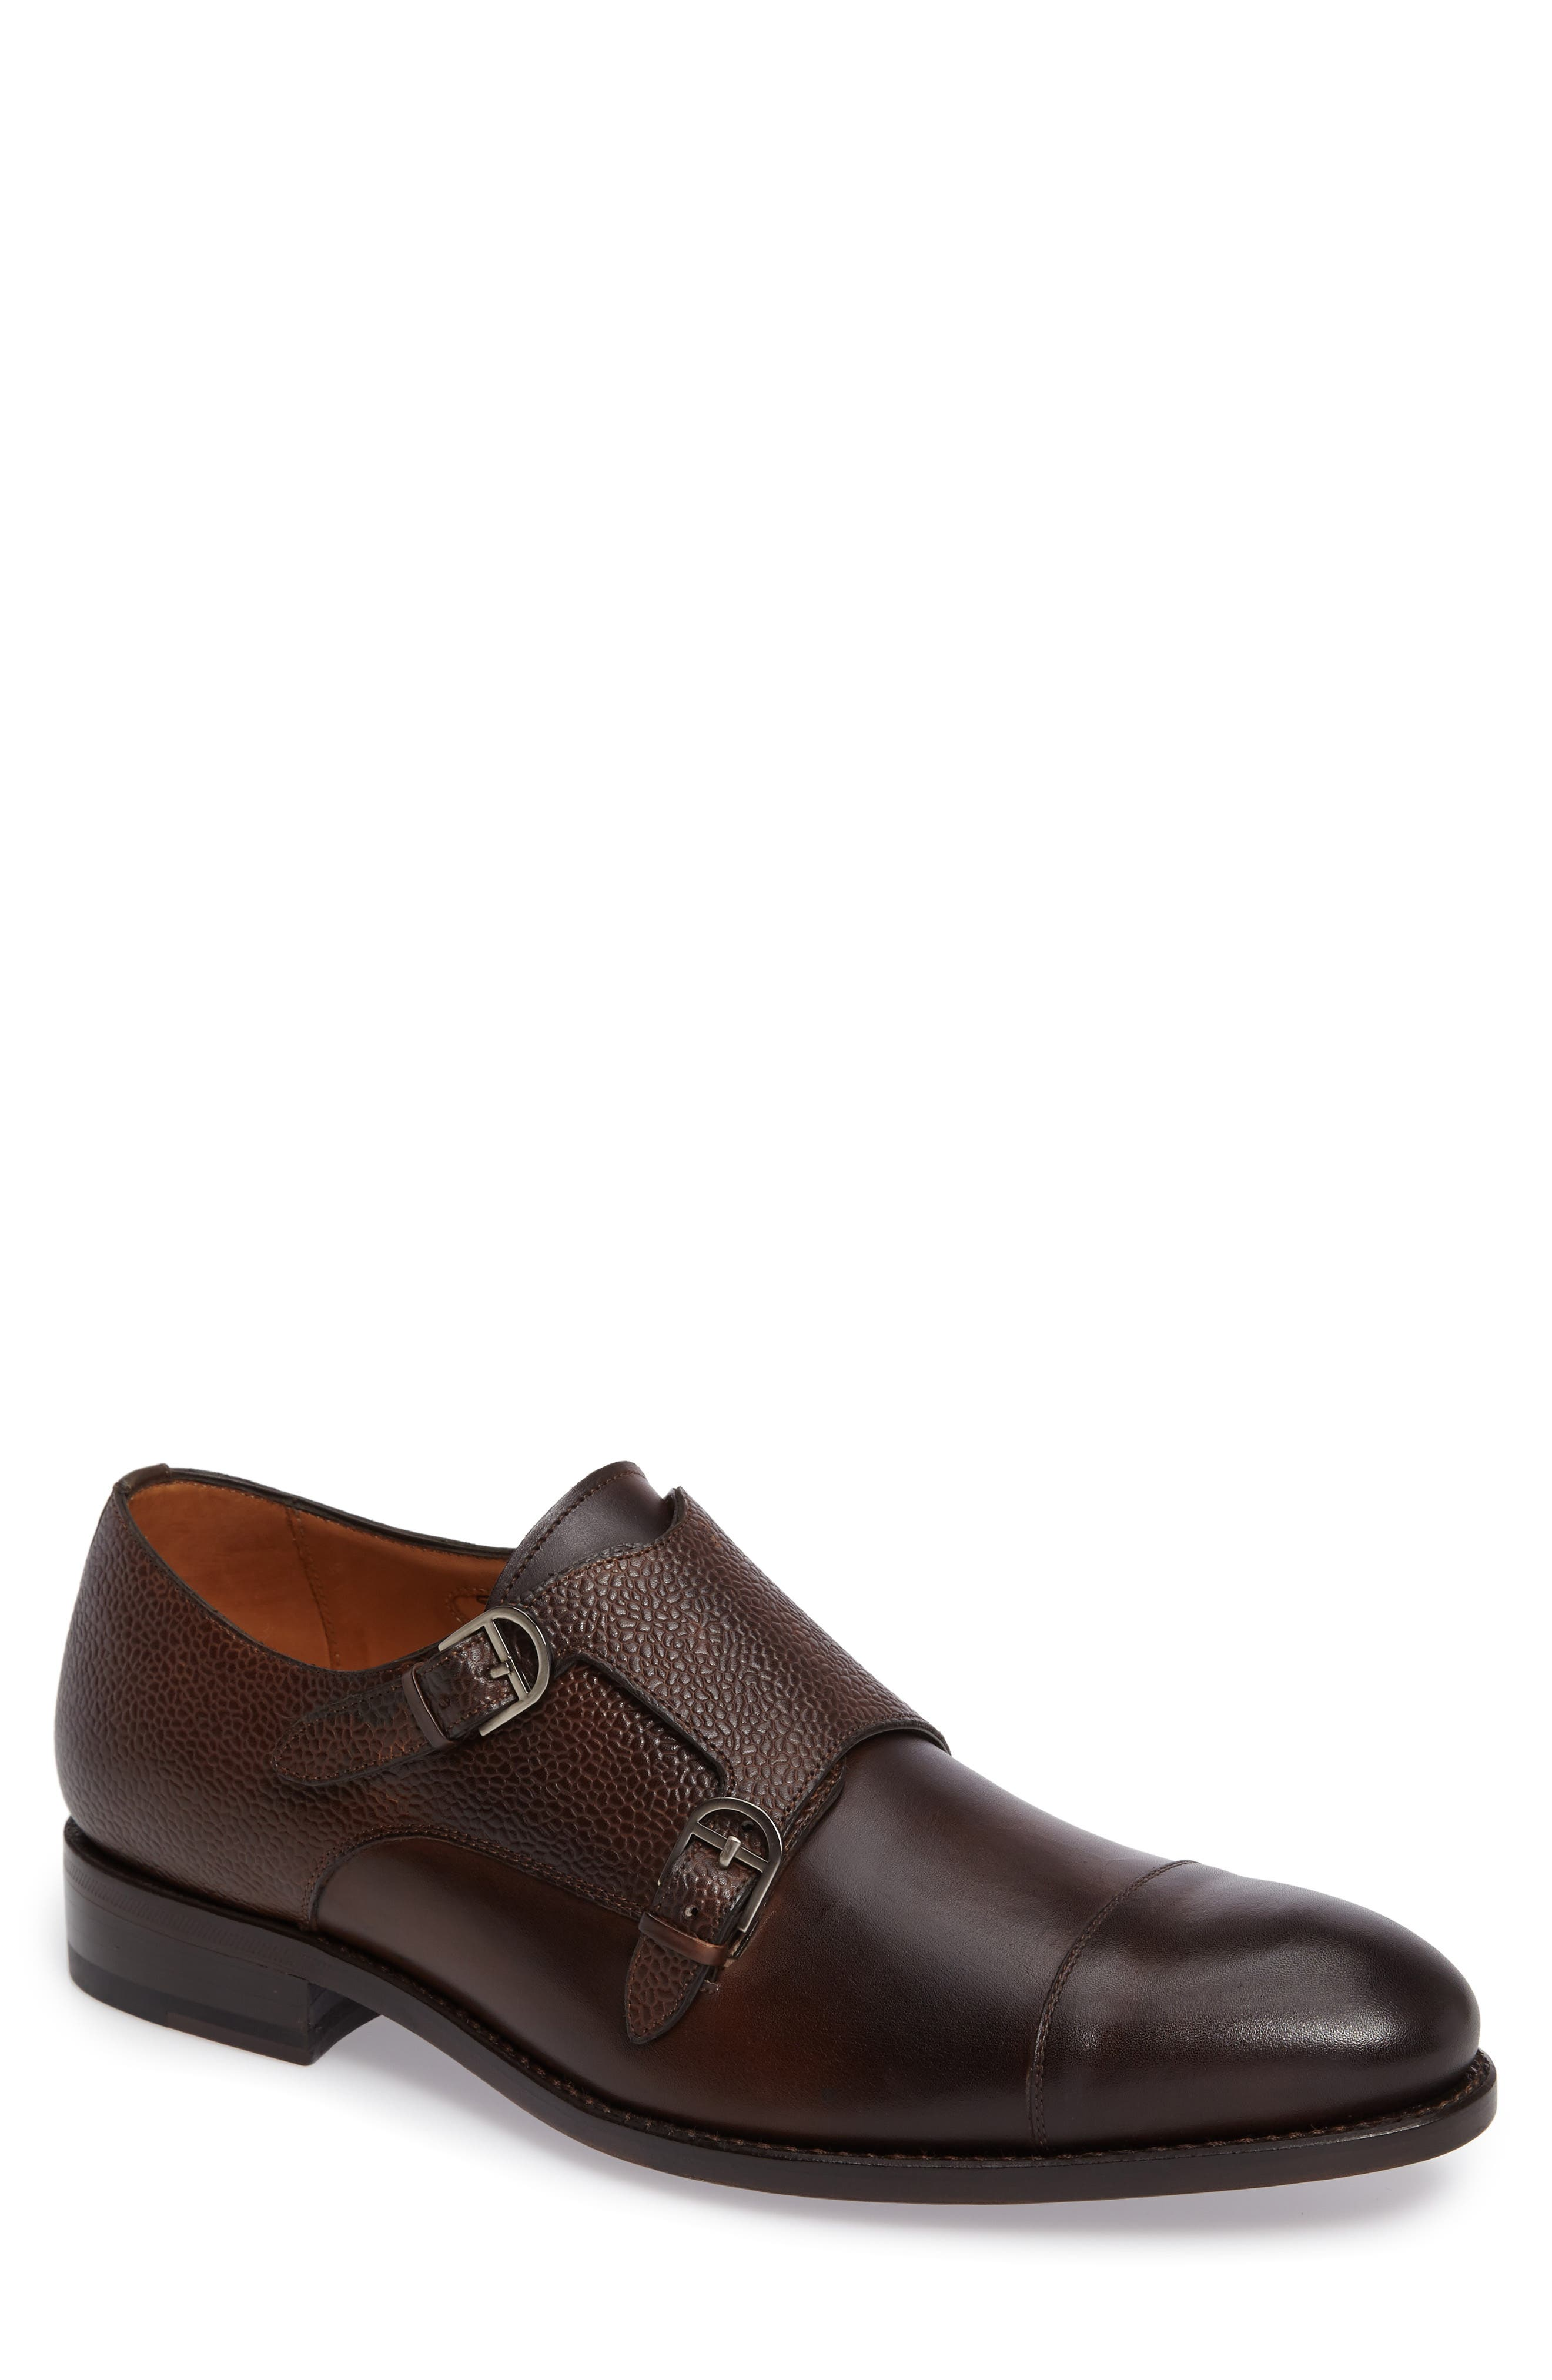 Impronta by Mezlan G109 Double Monk Strap Shoe (Men)